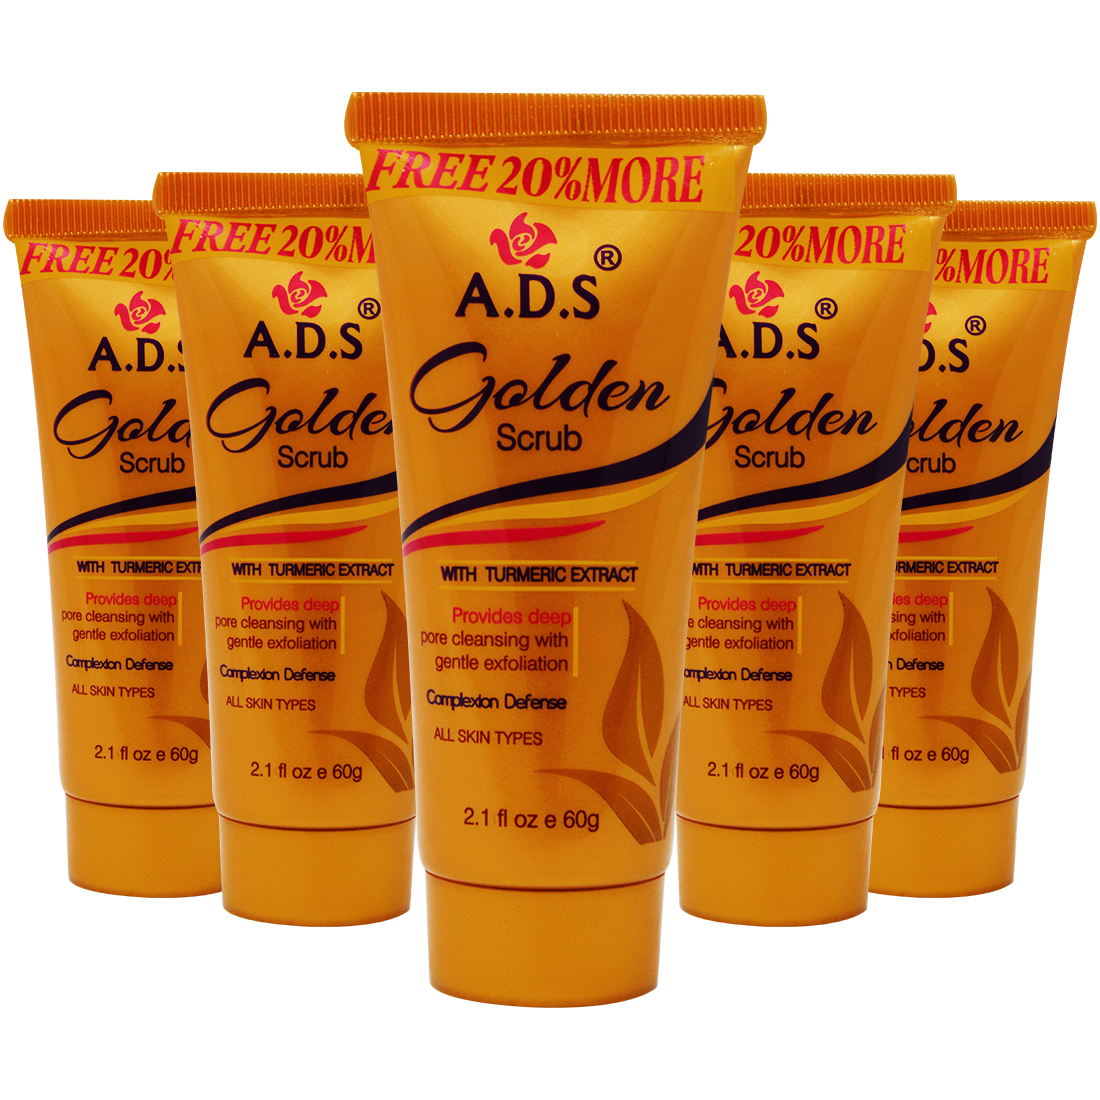 ADS Golden Facial Face Scrub, (A1546), 60g Pack of 5 With Lilium Hand Cleanser